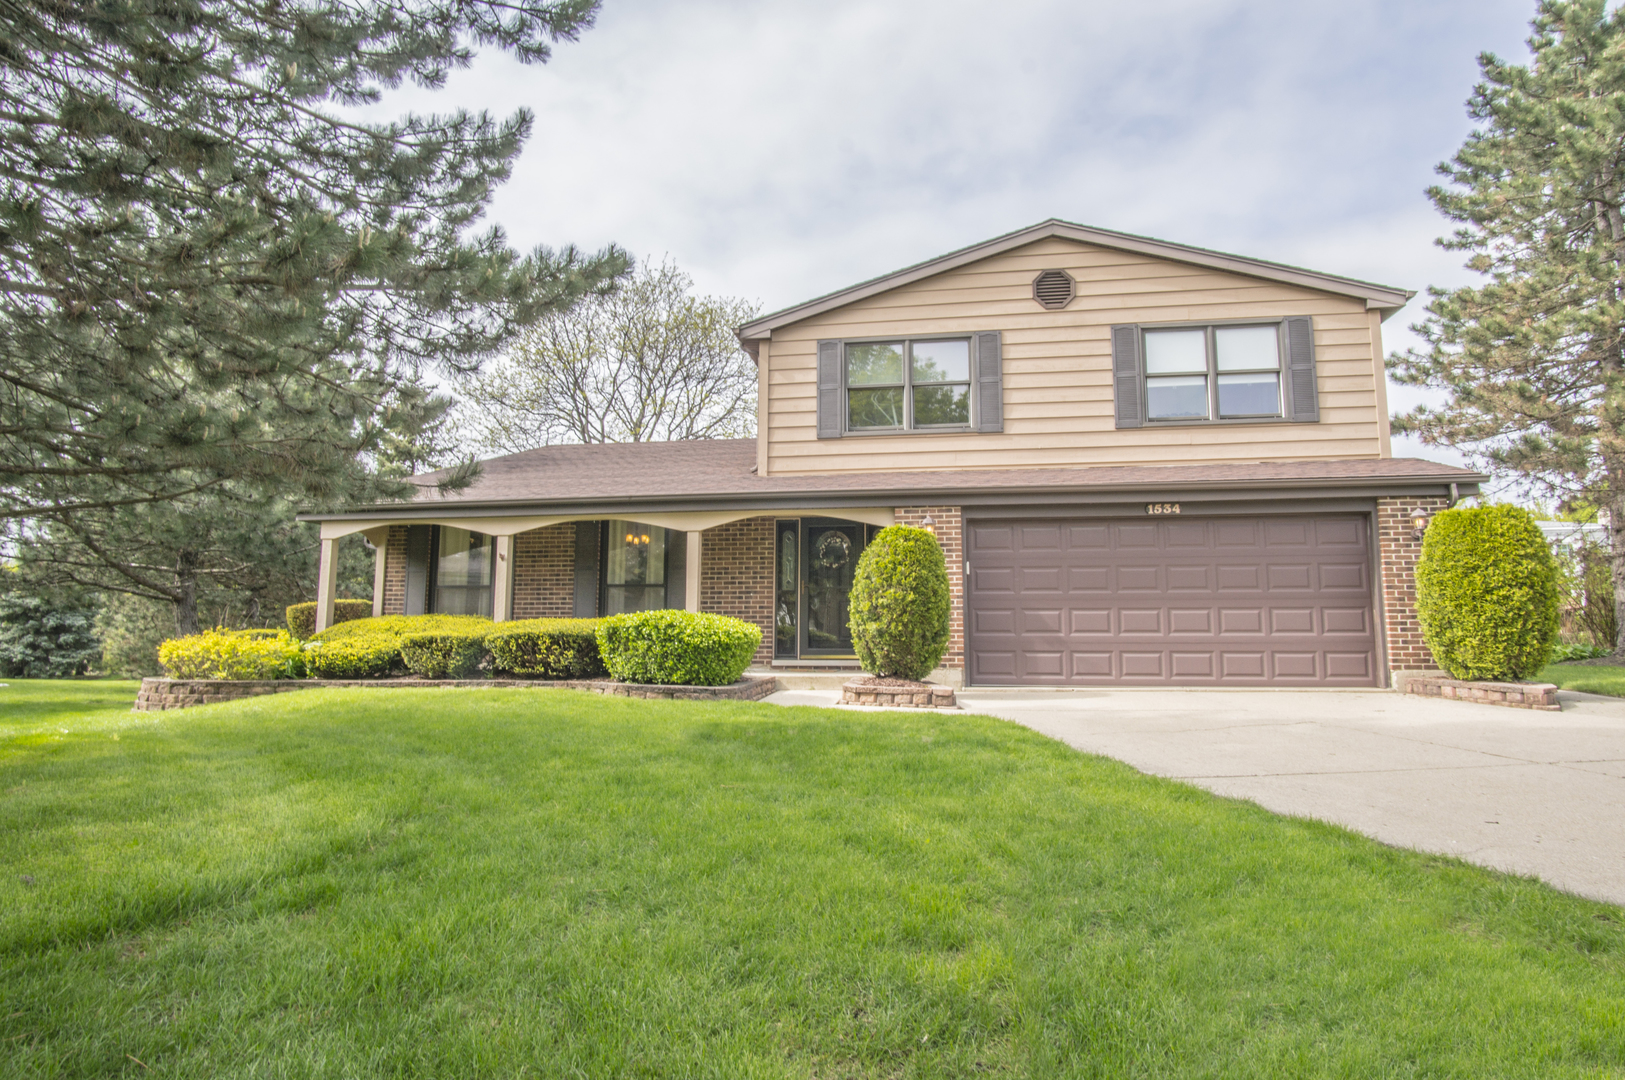 1534 South Kaspar Avenue, Arlington Heights in Cook County, IL 60005 Home for Sale